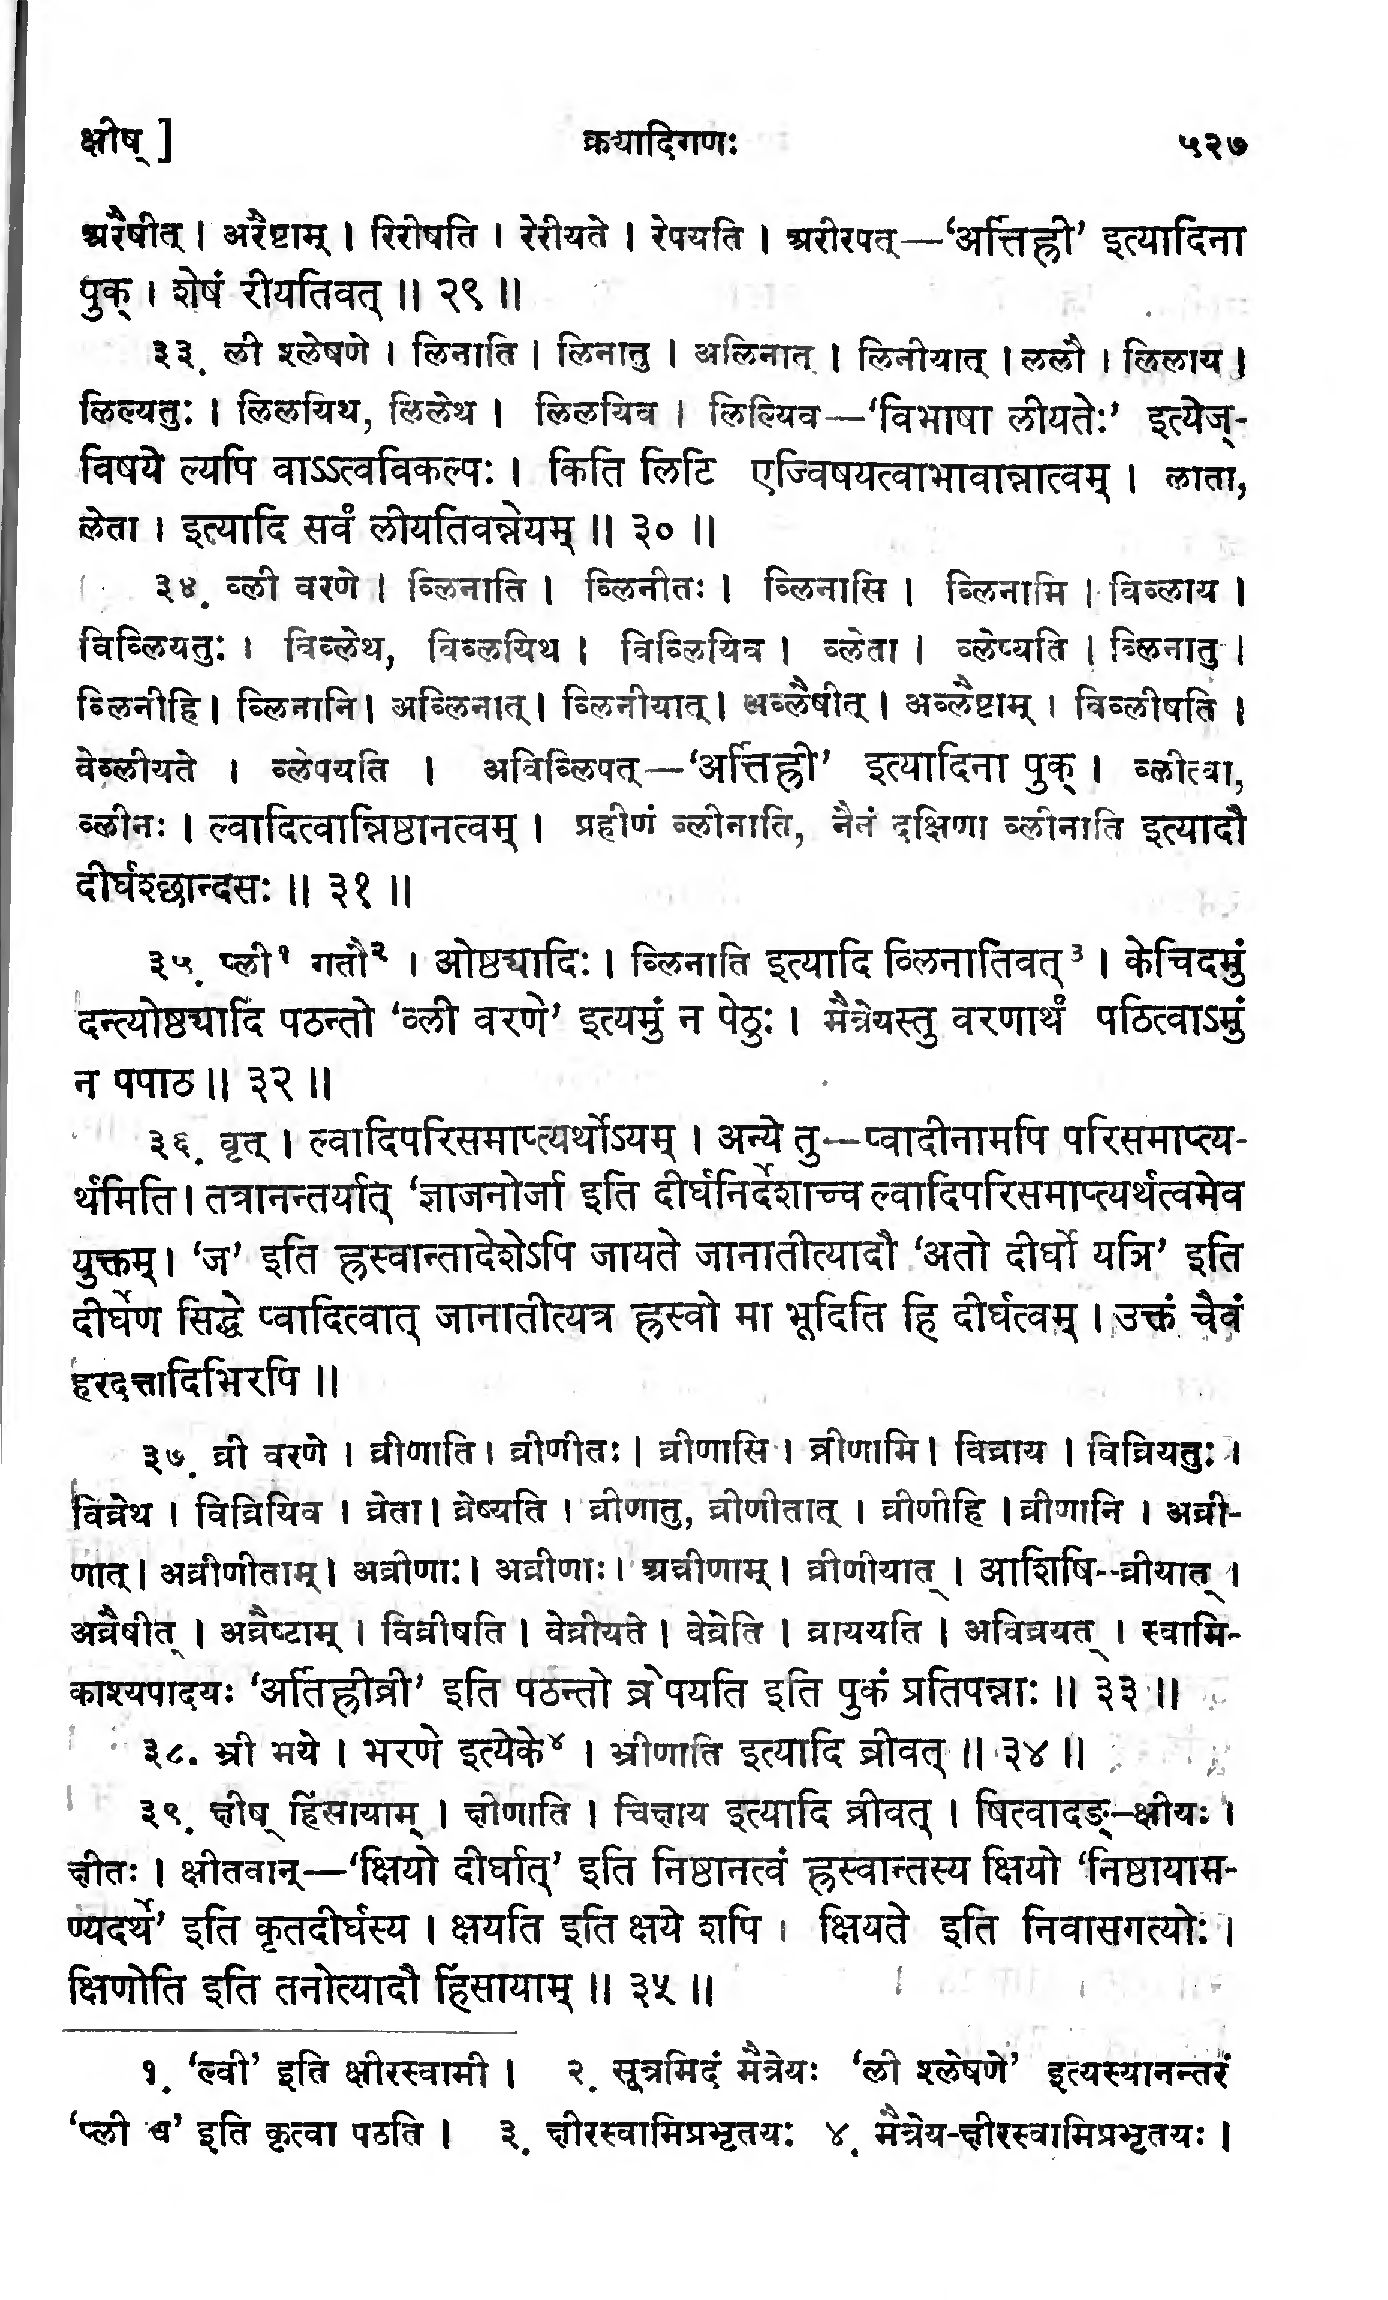 essay on tree in sanskrit language I was given a homework to write an essay on importance of trees but it should be in sanskrit language and not in hindi or english languagei tried to find out in google but i m not getting it in sanskrit i m getting in english but i want in sanskrit language so plz plz help me.